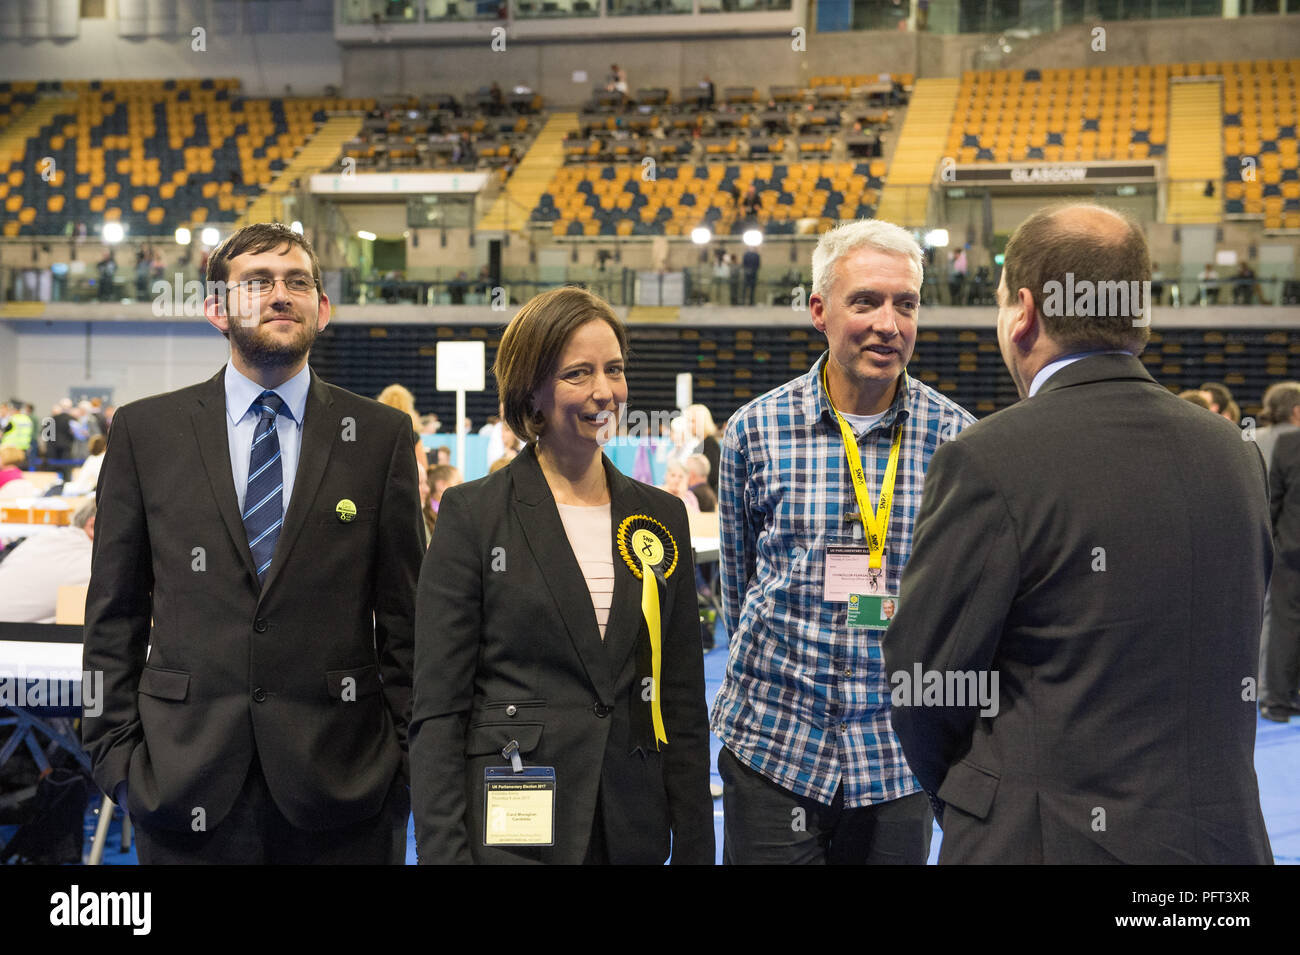 SNP canditate Carol Monaghan (L-R) Malcolm Mitchell - Campaign Manager, Carol Monaghan - Glasgow North West candidate, Feargal Dalton - Carol's Husban - Stock Image